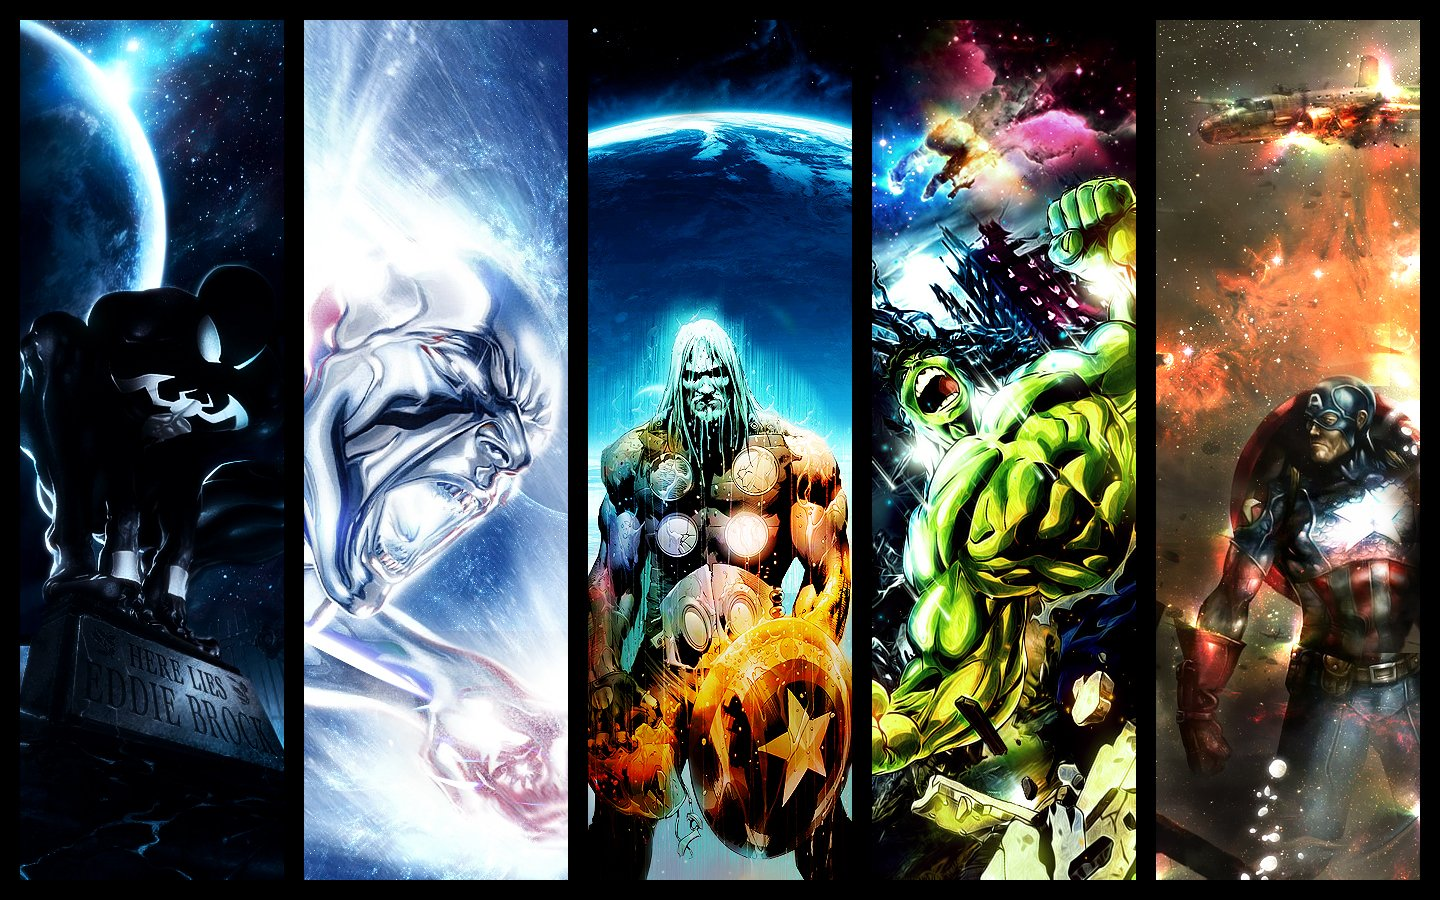 Marvel Computer Wallpapers Desktop Backgrounds 1440x900 ID621164 1440x900